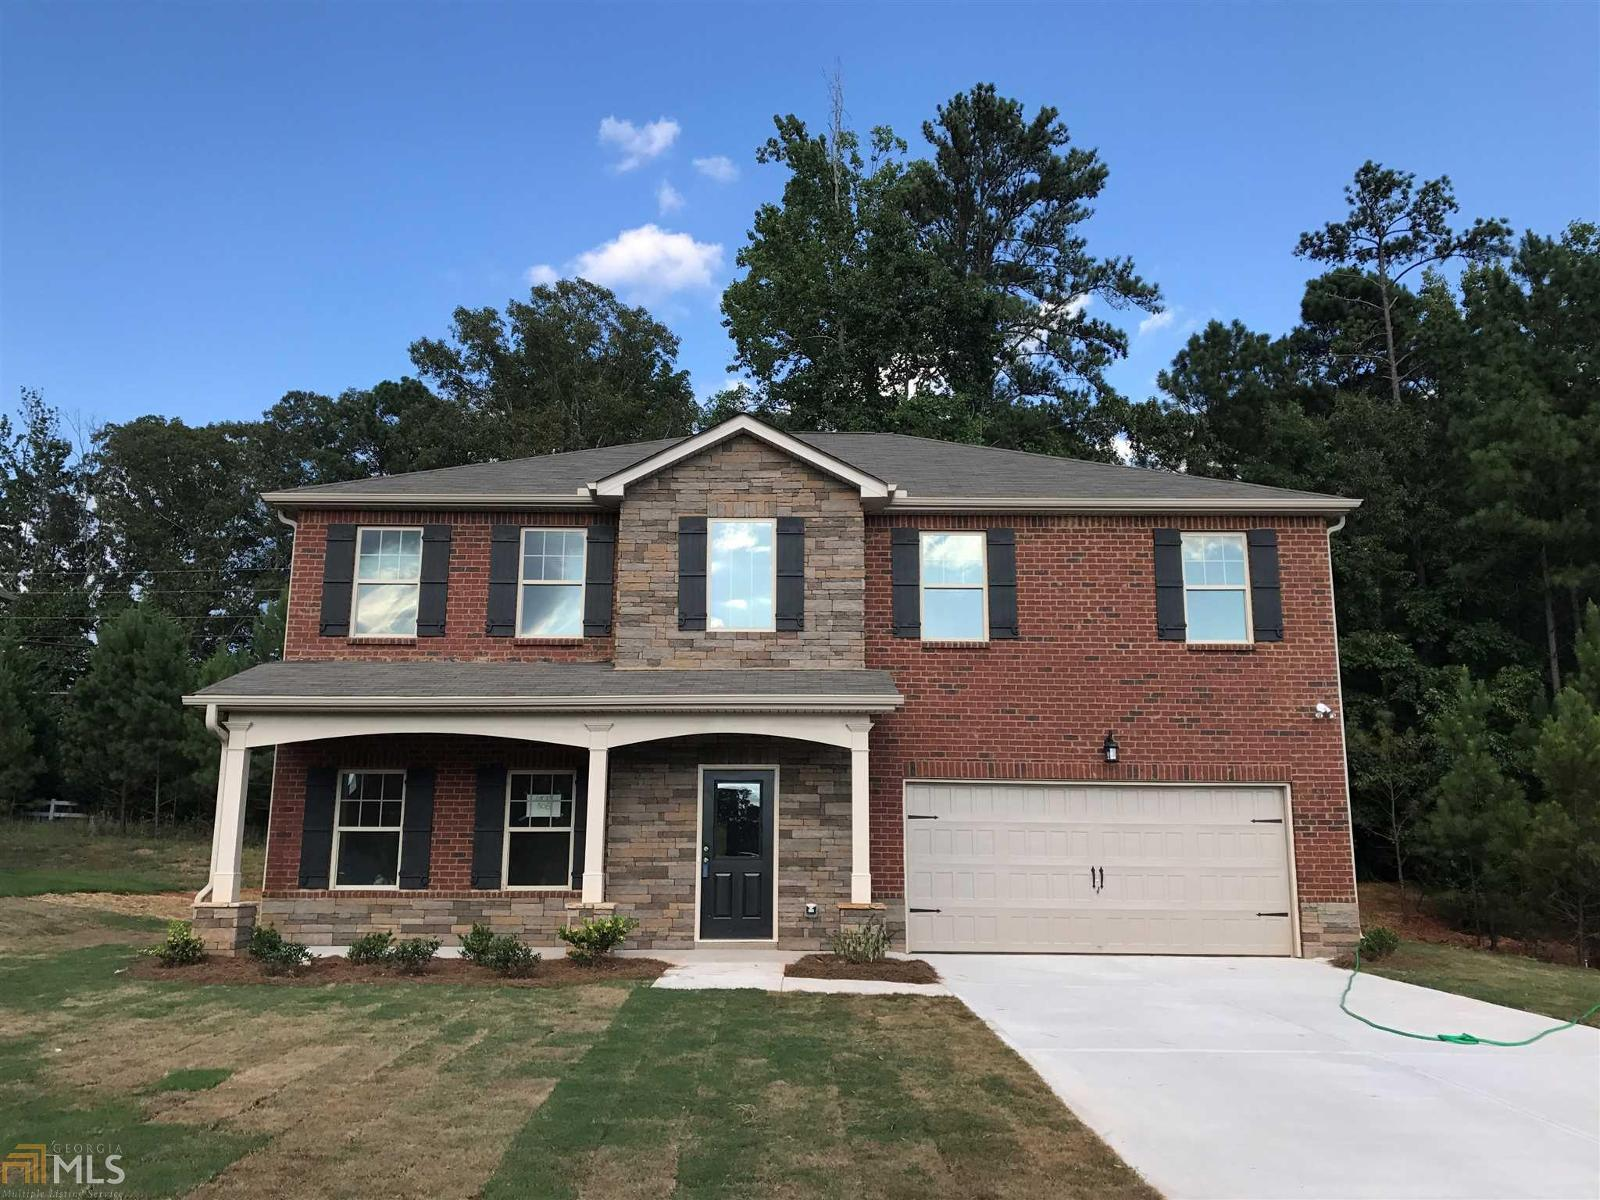 308 panhandle pl 33 hampton ga mls 8226331 better